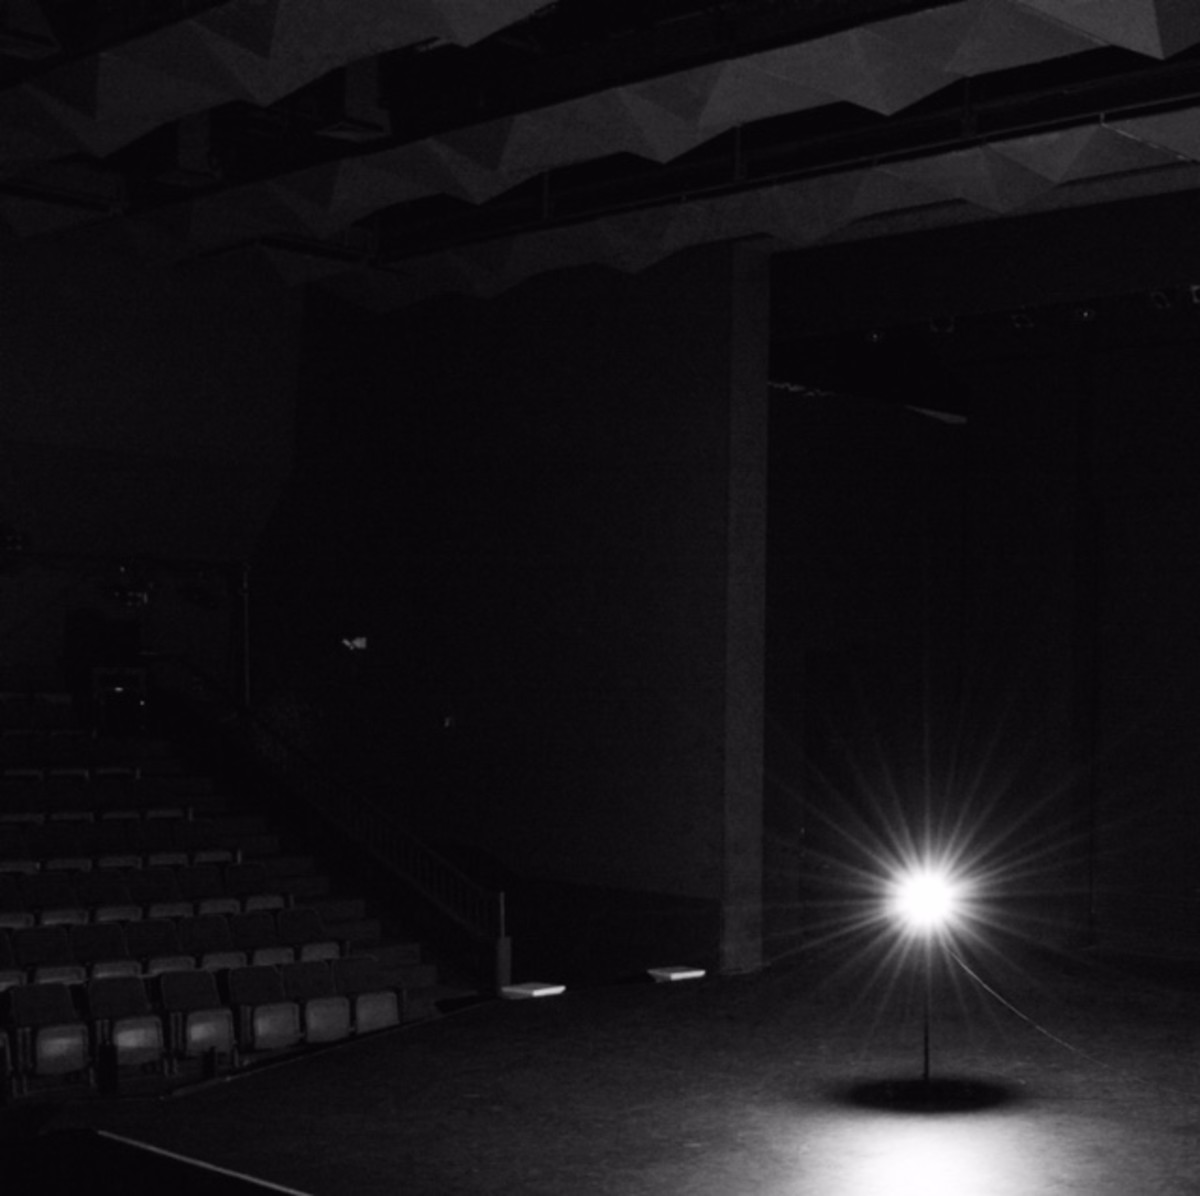 Stage illuminated by a ghost light.